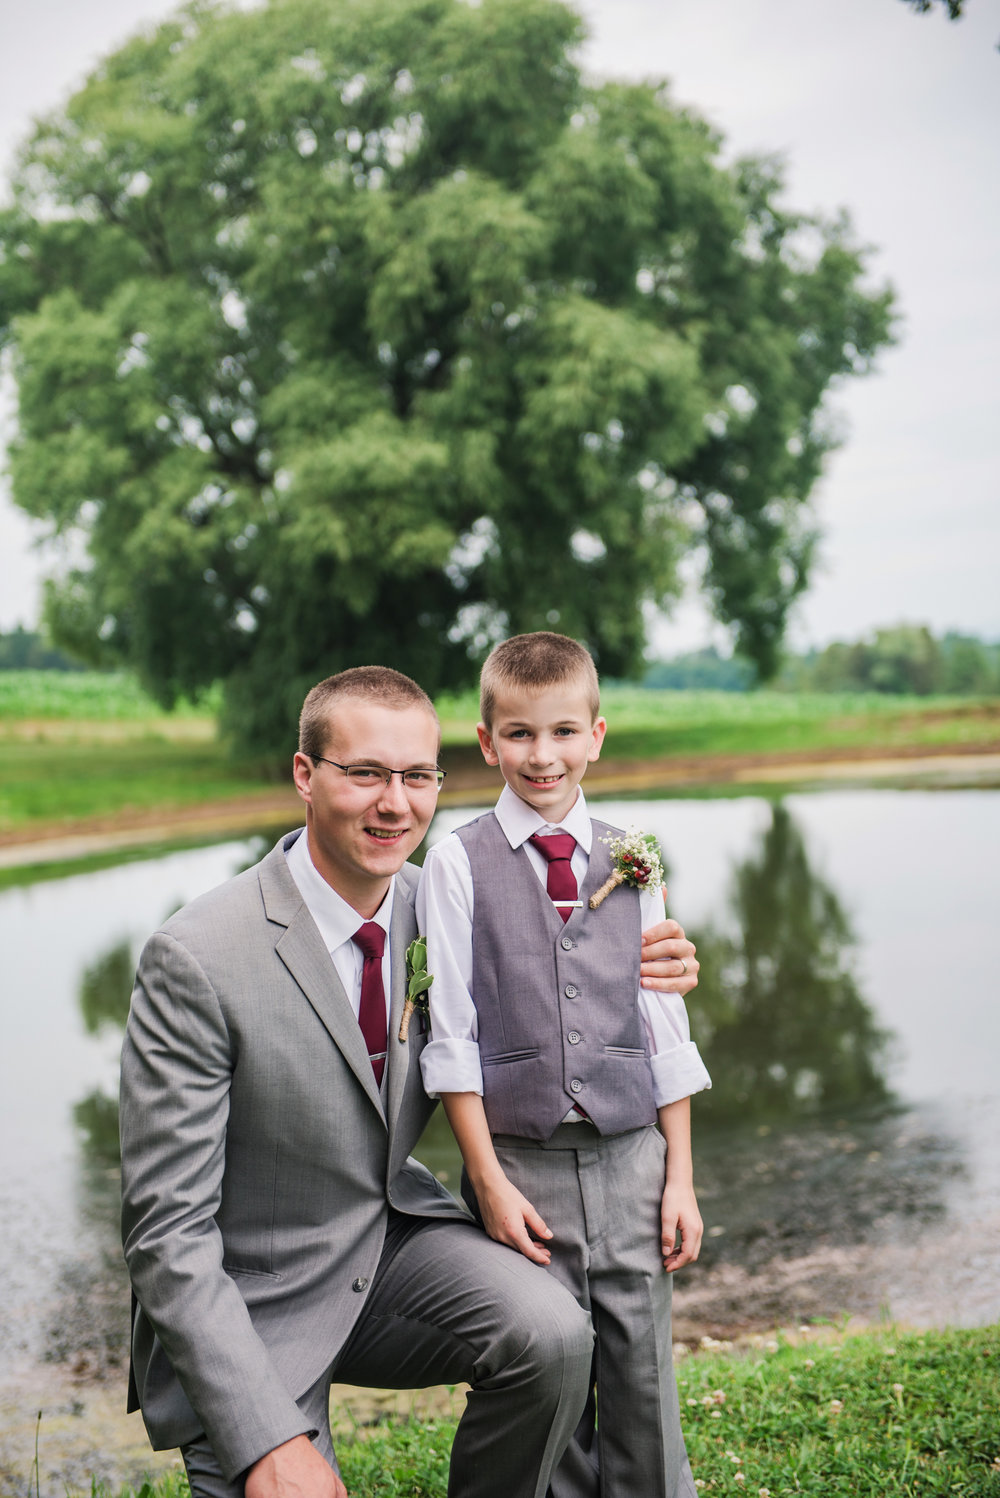 JILLSTUDIO_MKJ_Farms_Central_NY_Wedding_Rochester_NY_Photographer_DSC_8316.jpg